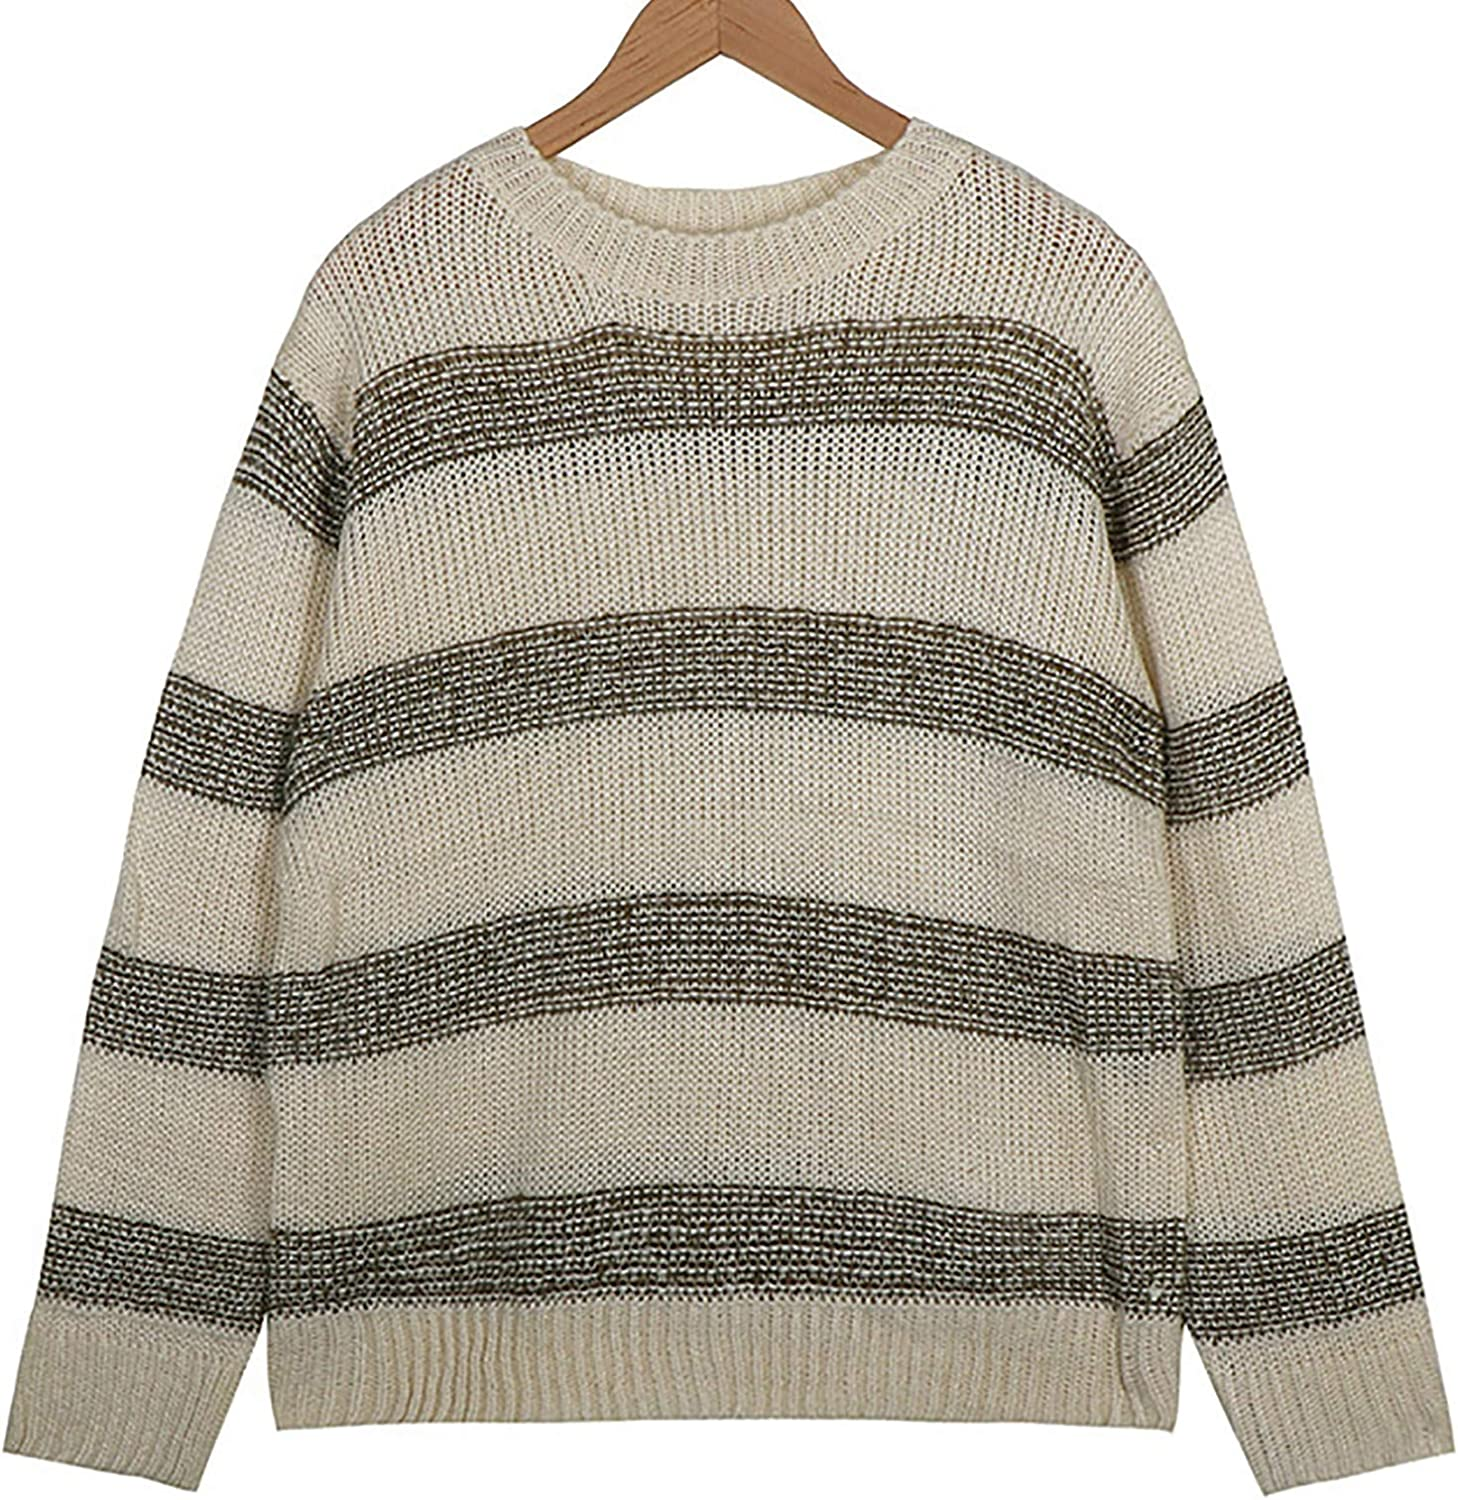 ZSBAYU Men's Striped Crewneck Pullover Sweaters Long Sleeve Cable-Knit Sweater Wool Blend Jumpers Sweatershirt